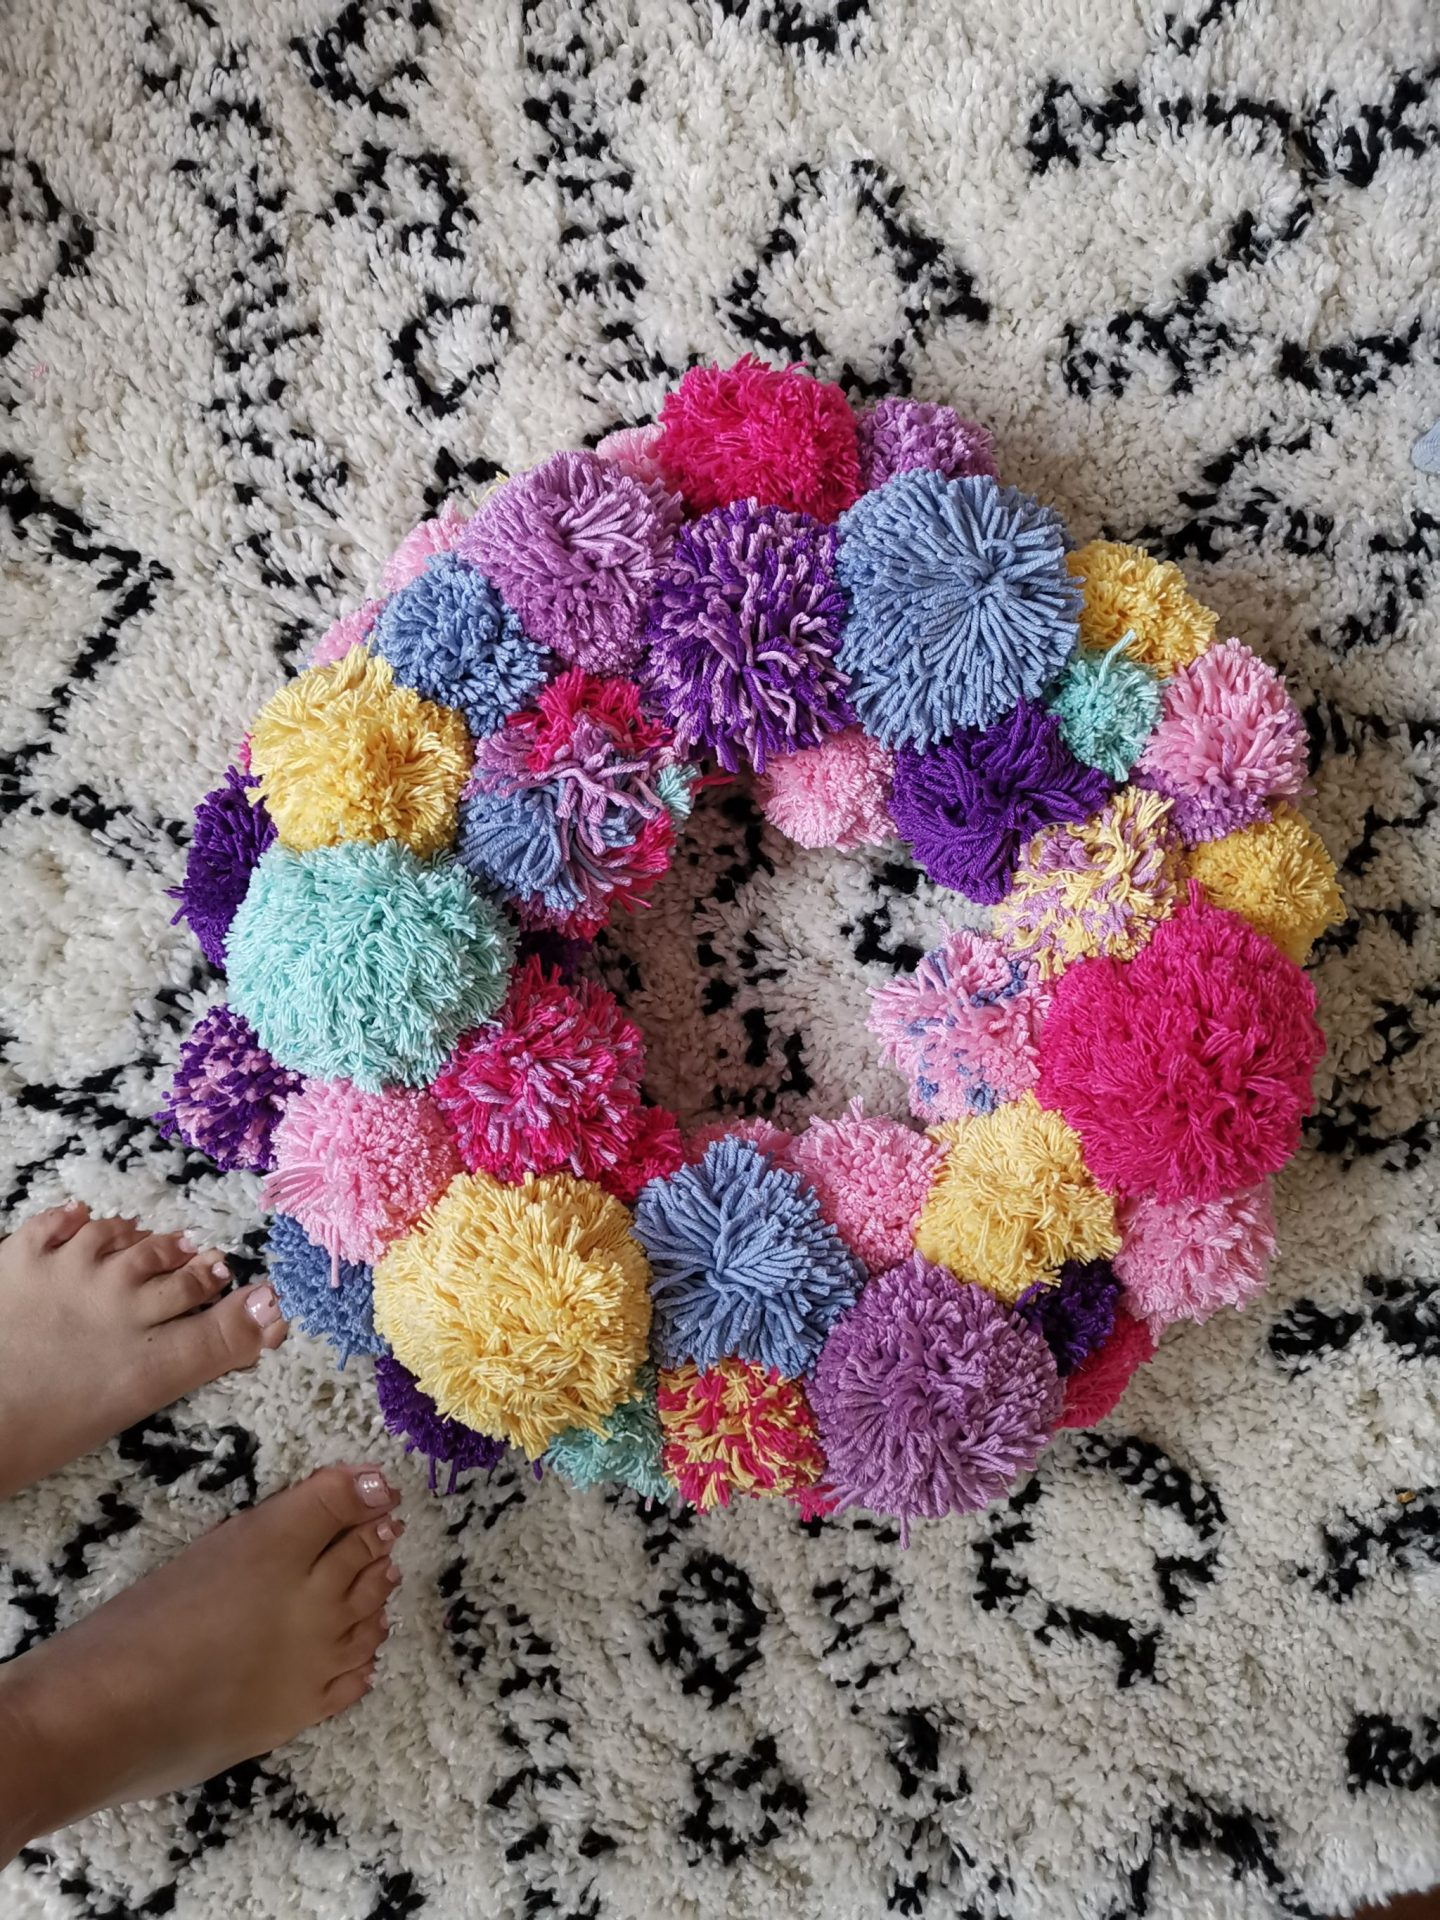 How to make a pastel pom pom wreath